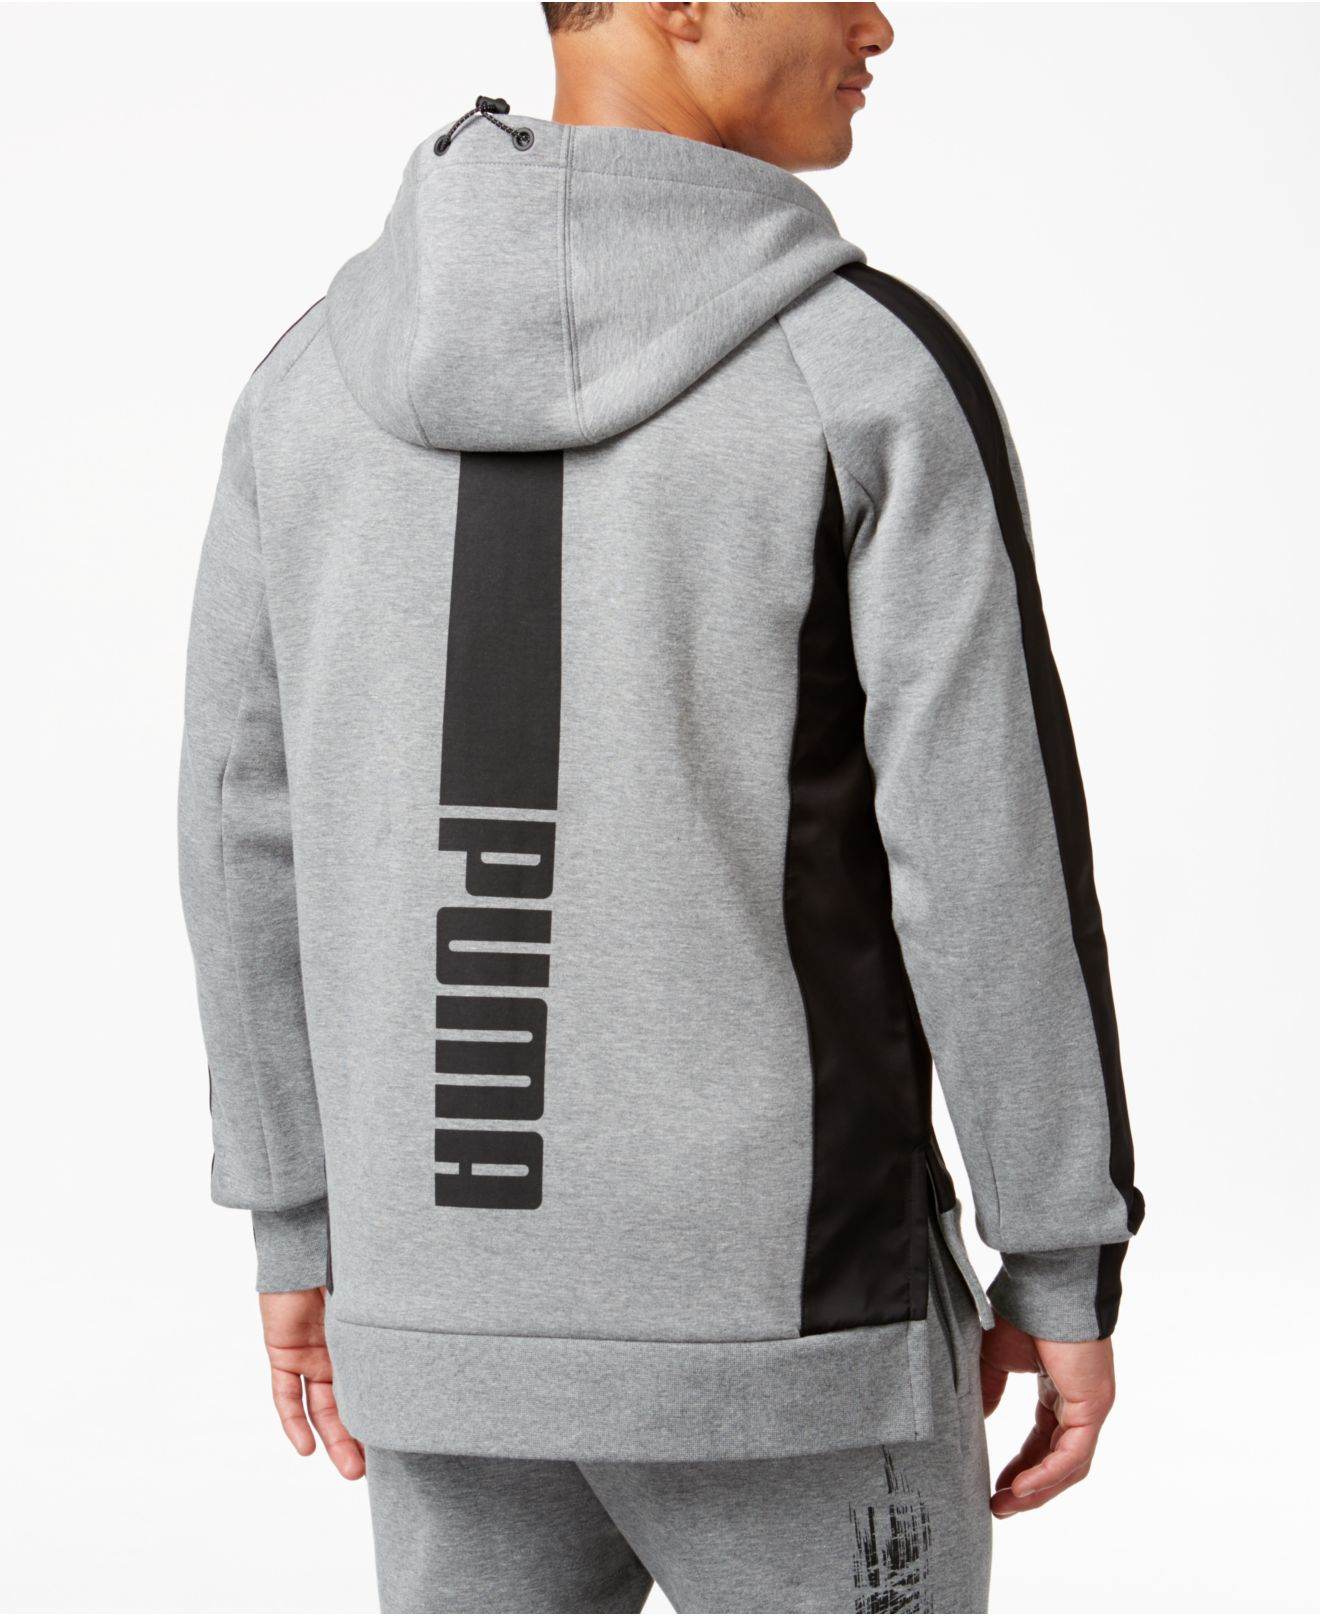 Puma Men S Graphic Full Zip Hoodie In Gray For Men Lyst